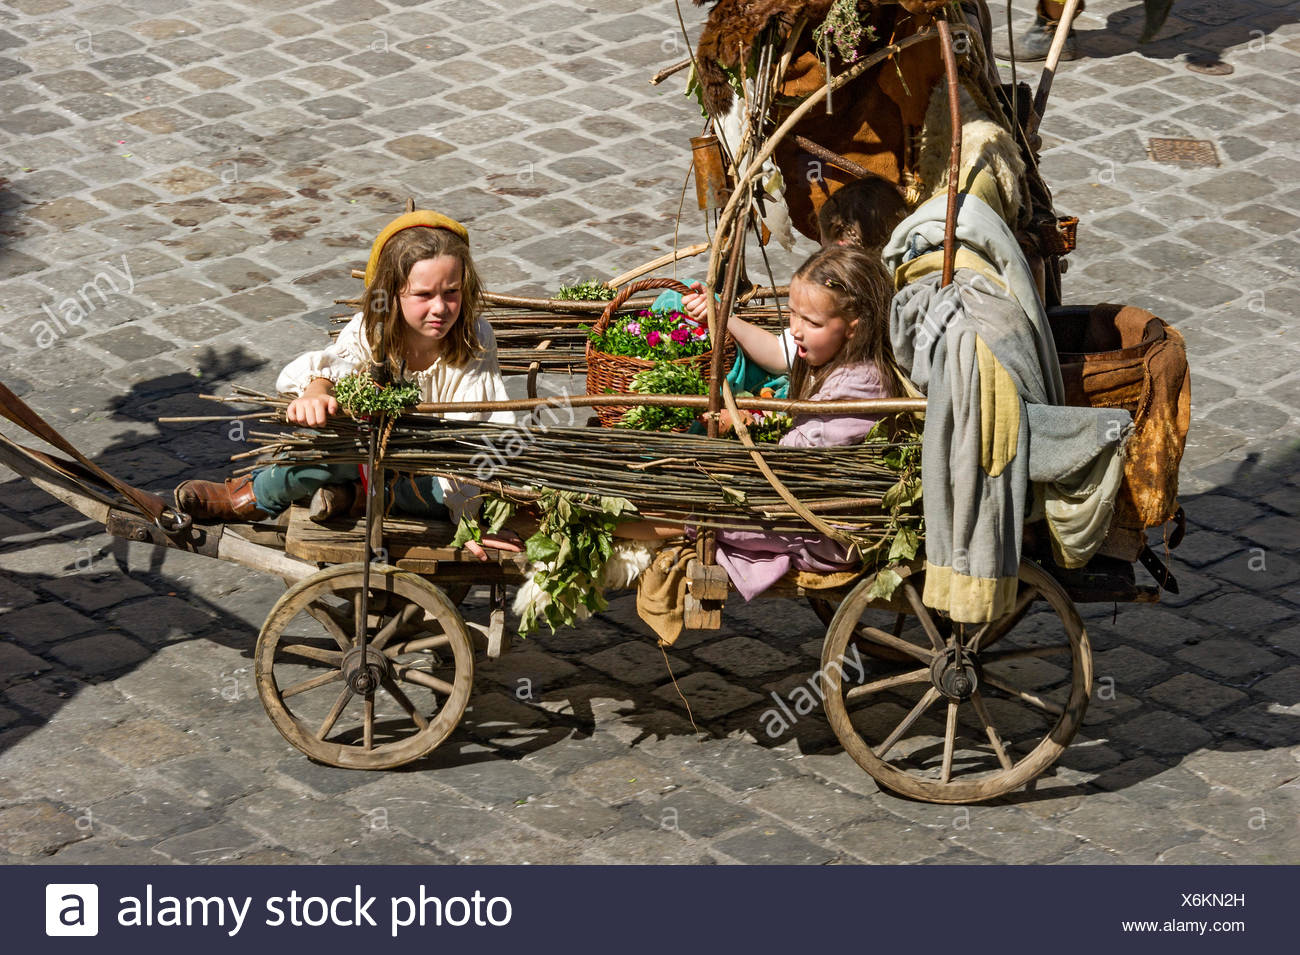 Children in an impoverished cart, wedding procession of the 'Landshut Wedding', historic center, Landshut, Lower Bavaria - Stock Image